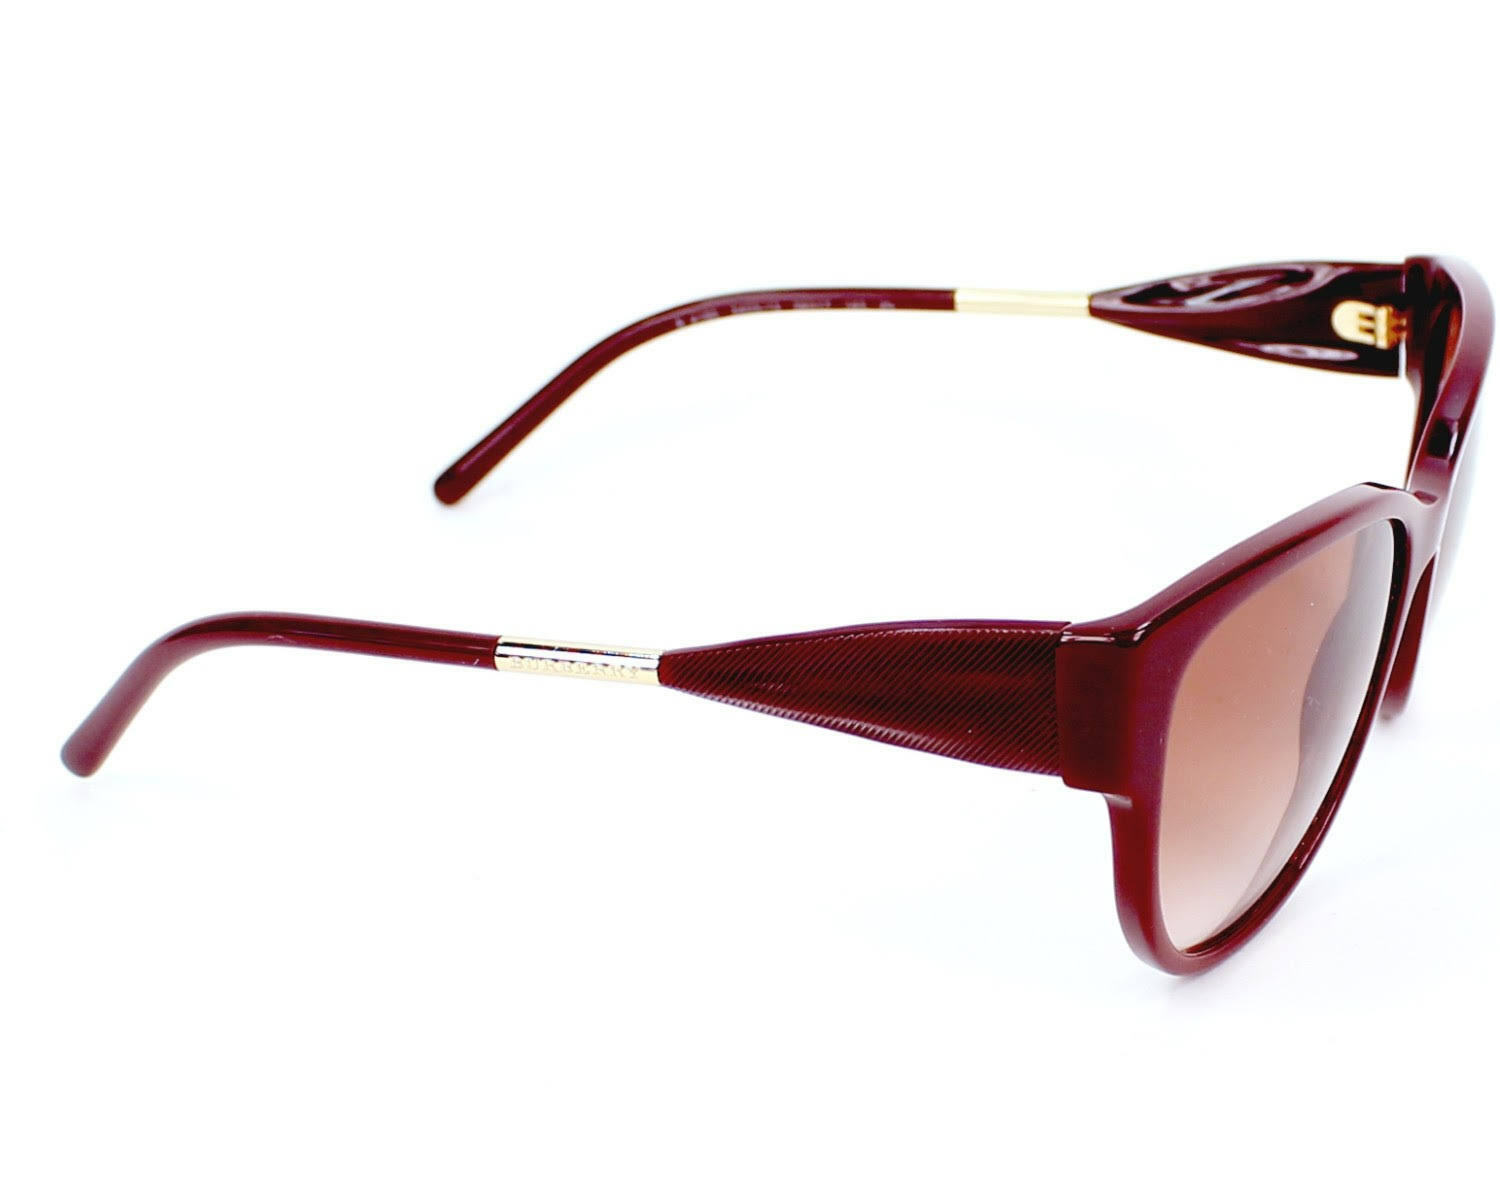 27accf5c5efc Burberry Women s Sunglasses B 4190 3403 13 Red Authentic B4190 56-17 ...